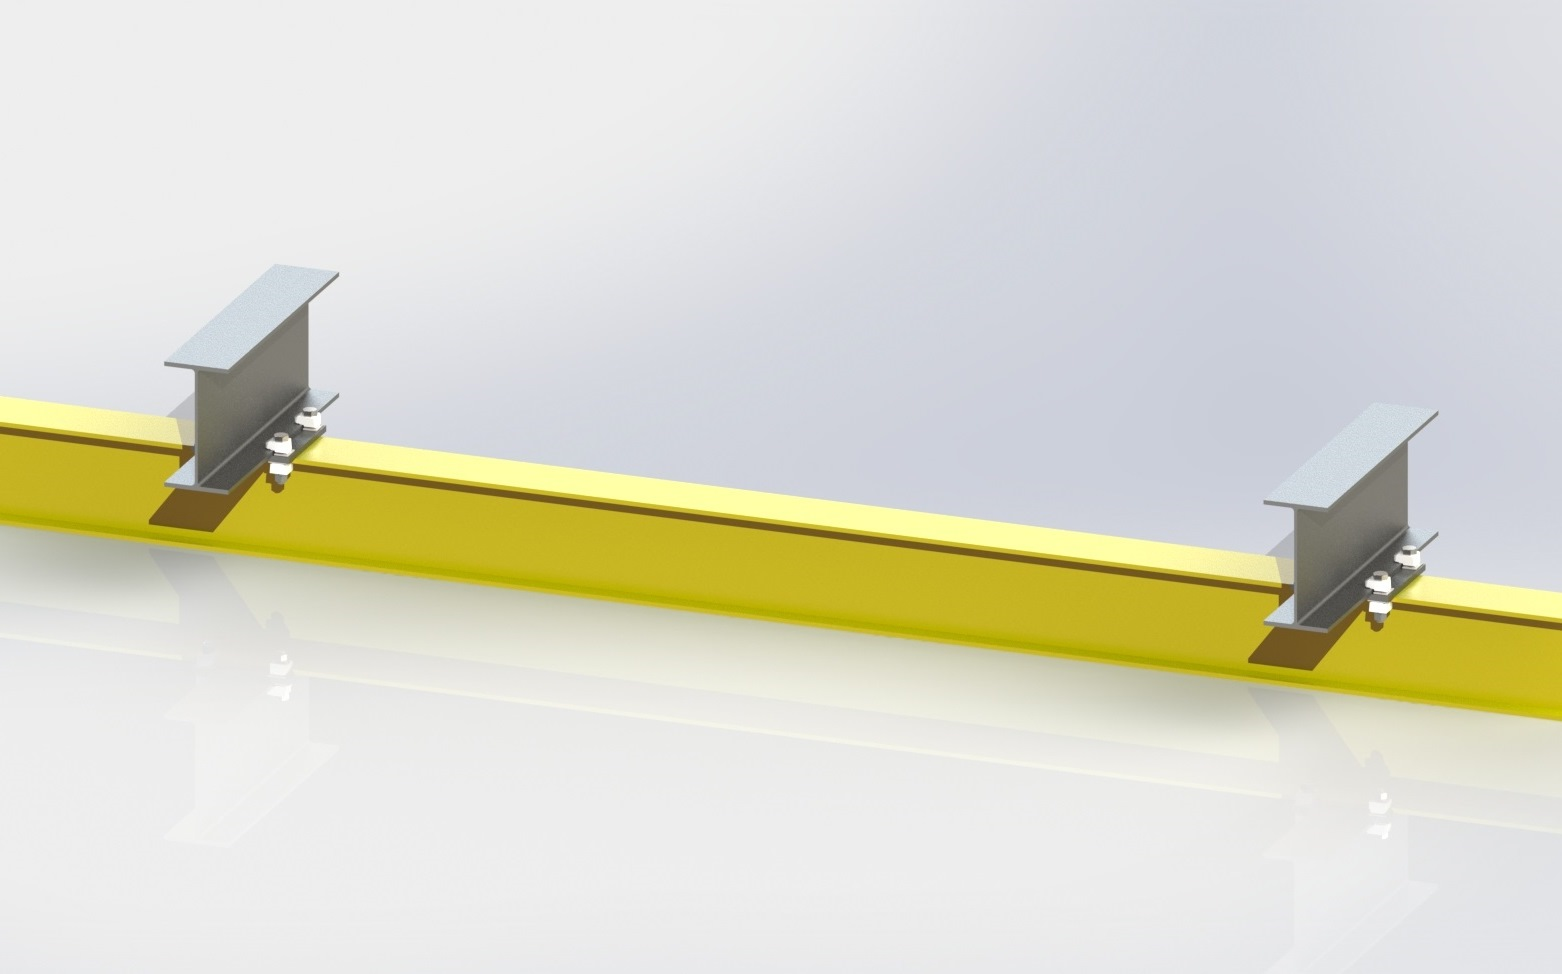 Rigid Rail Systems Wrs Fall Protection Systems And